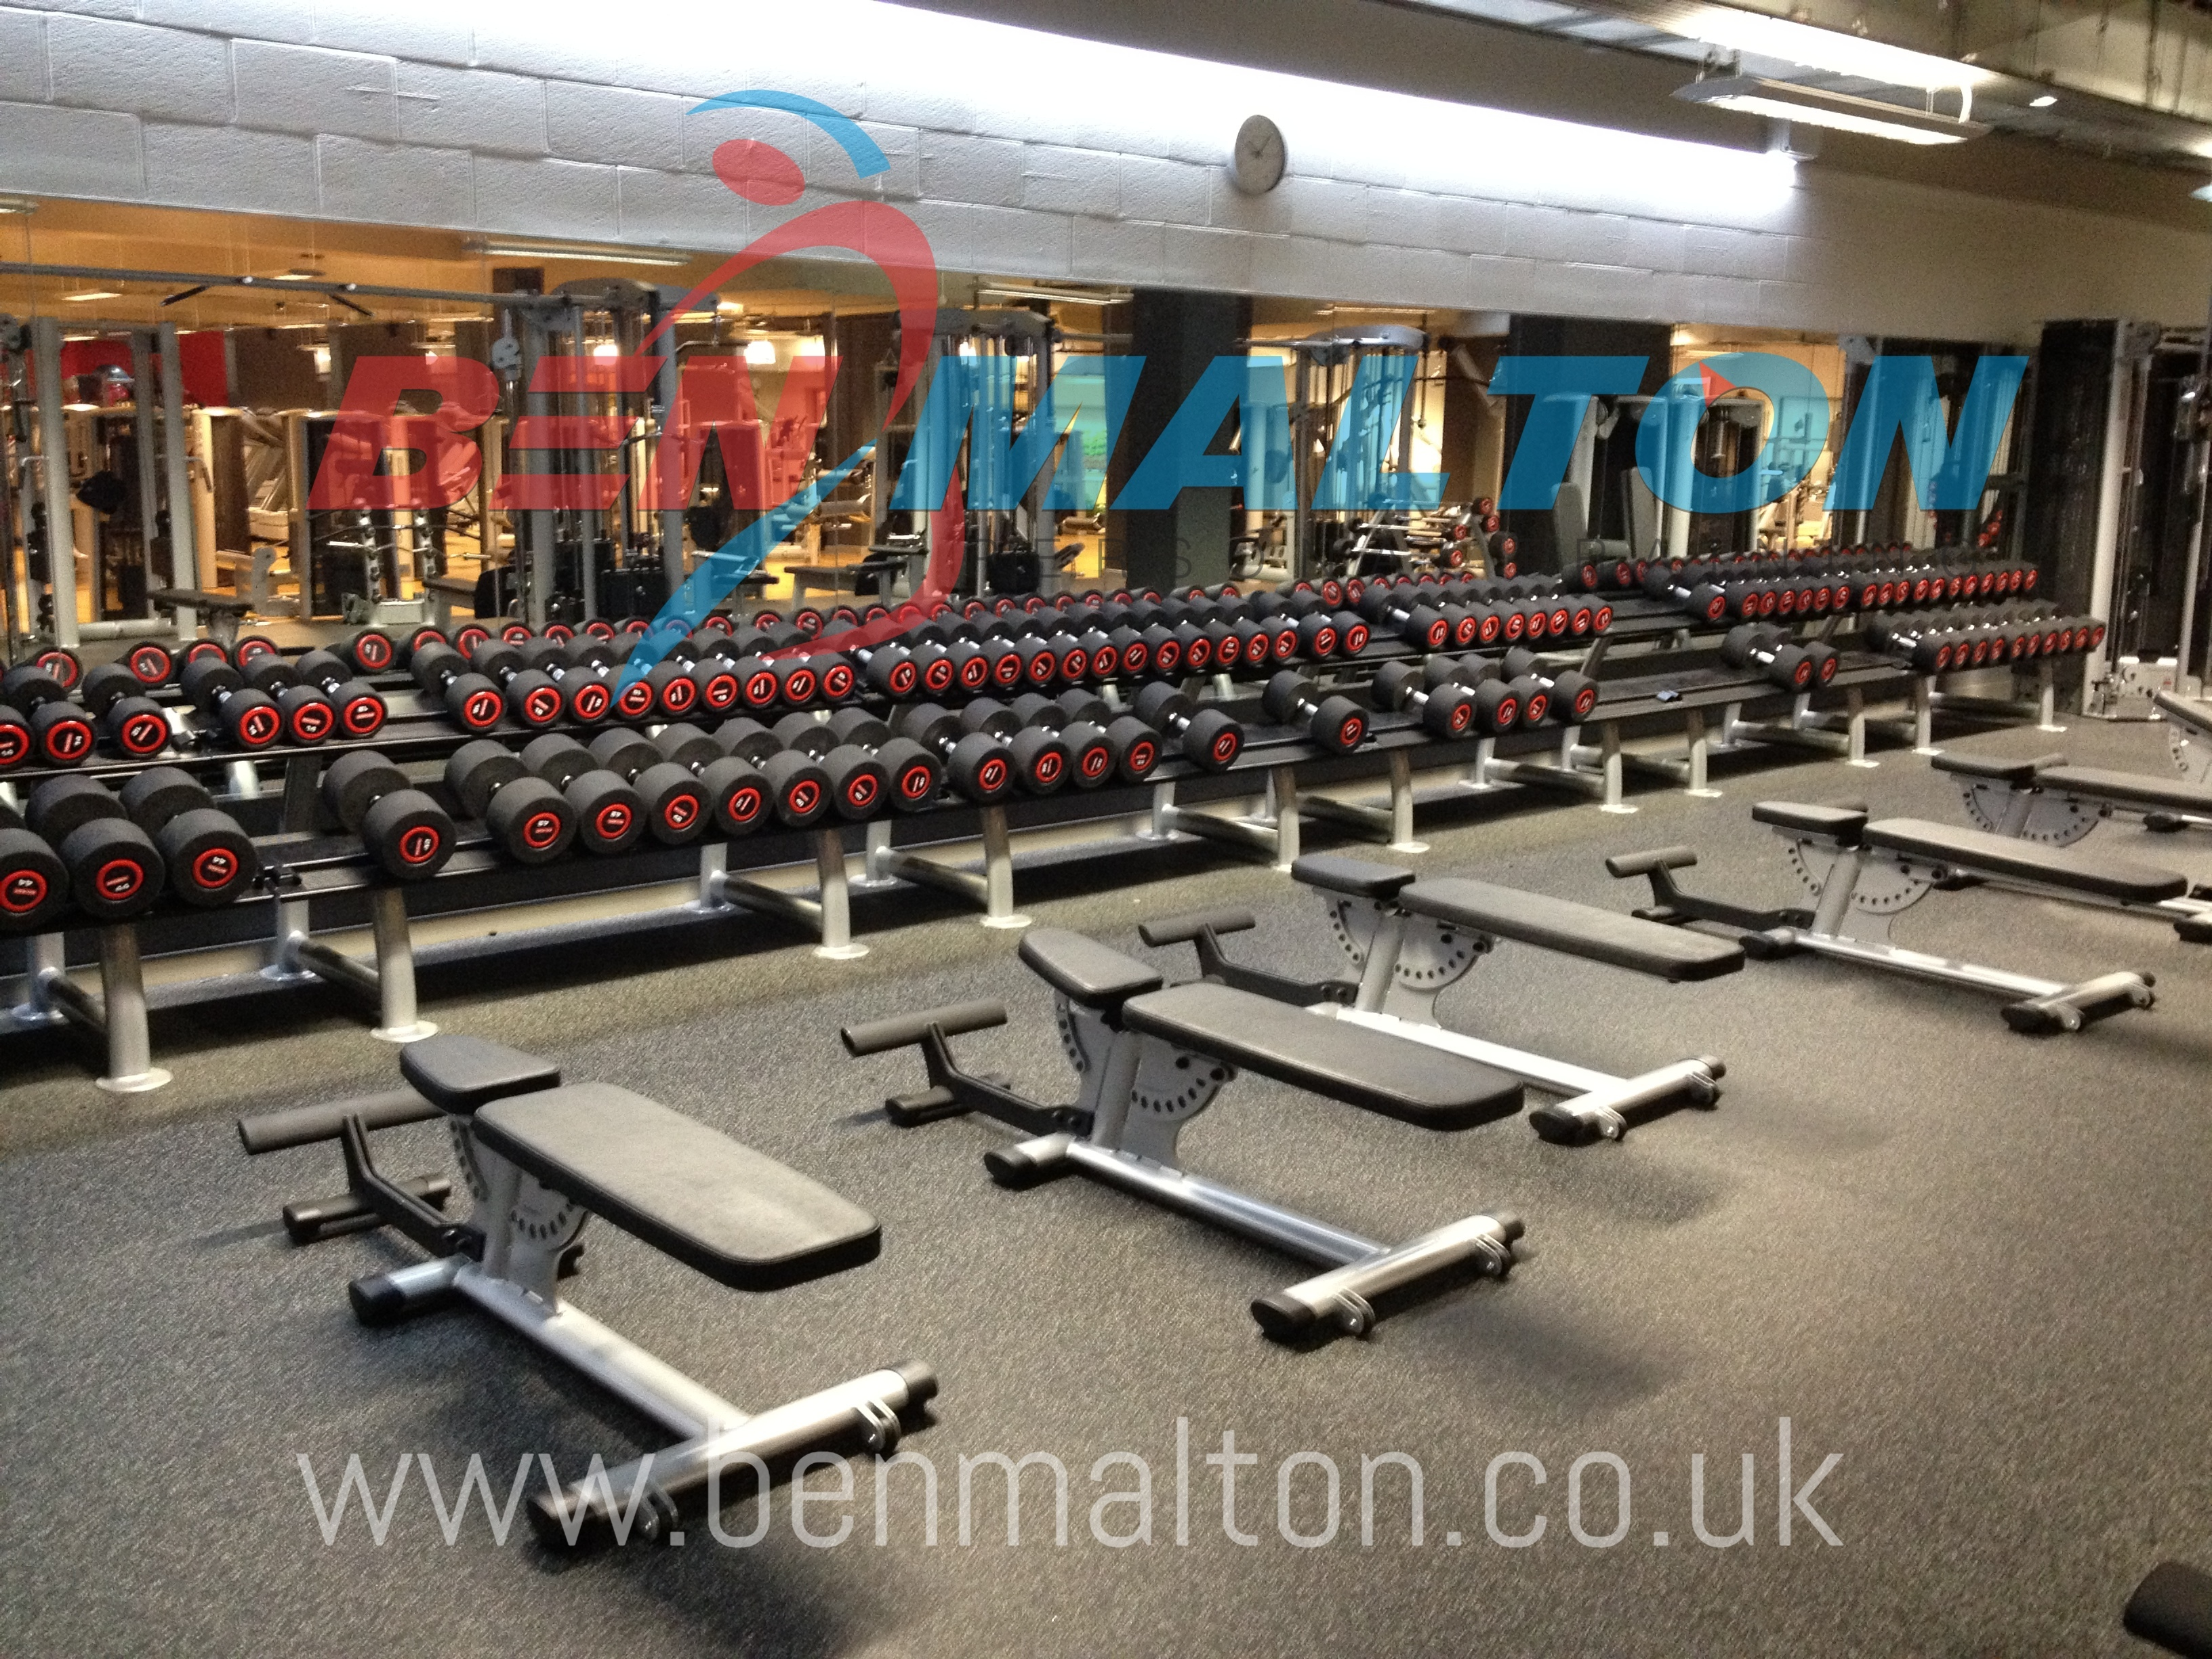 The Gym Group - Weights Area